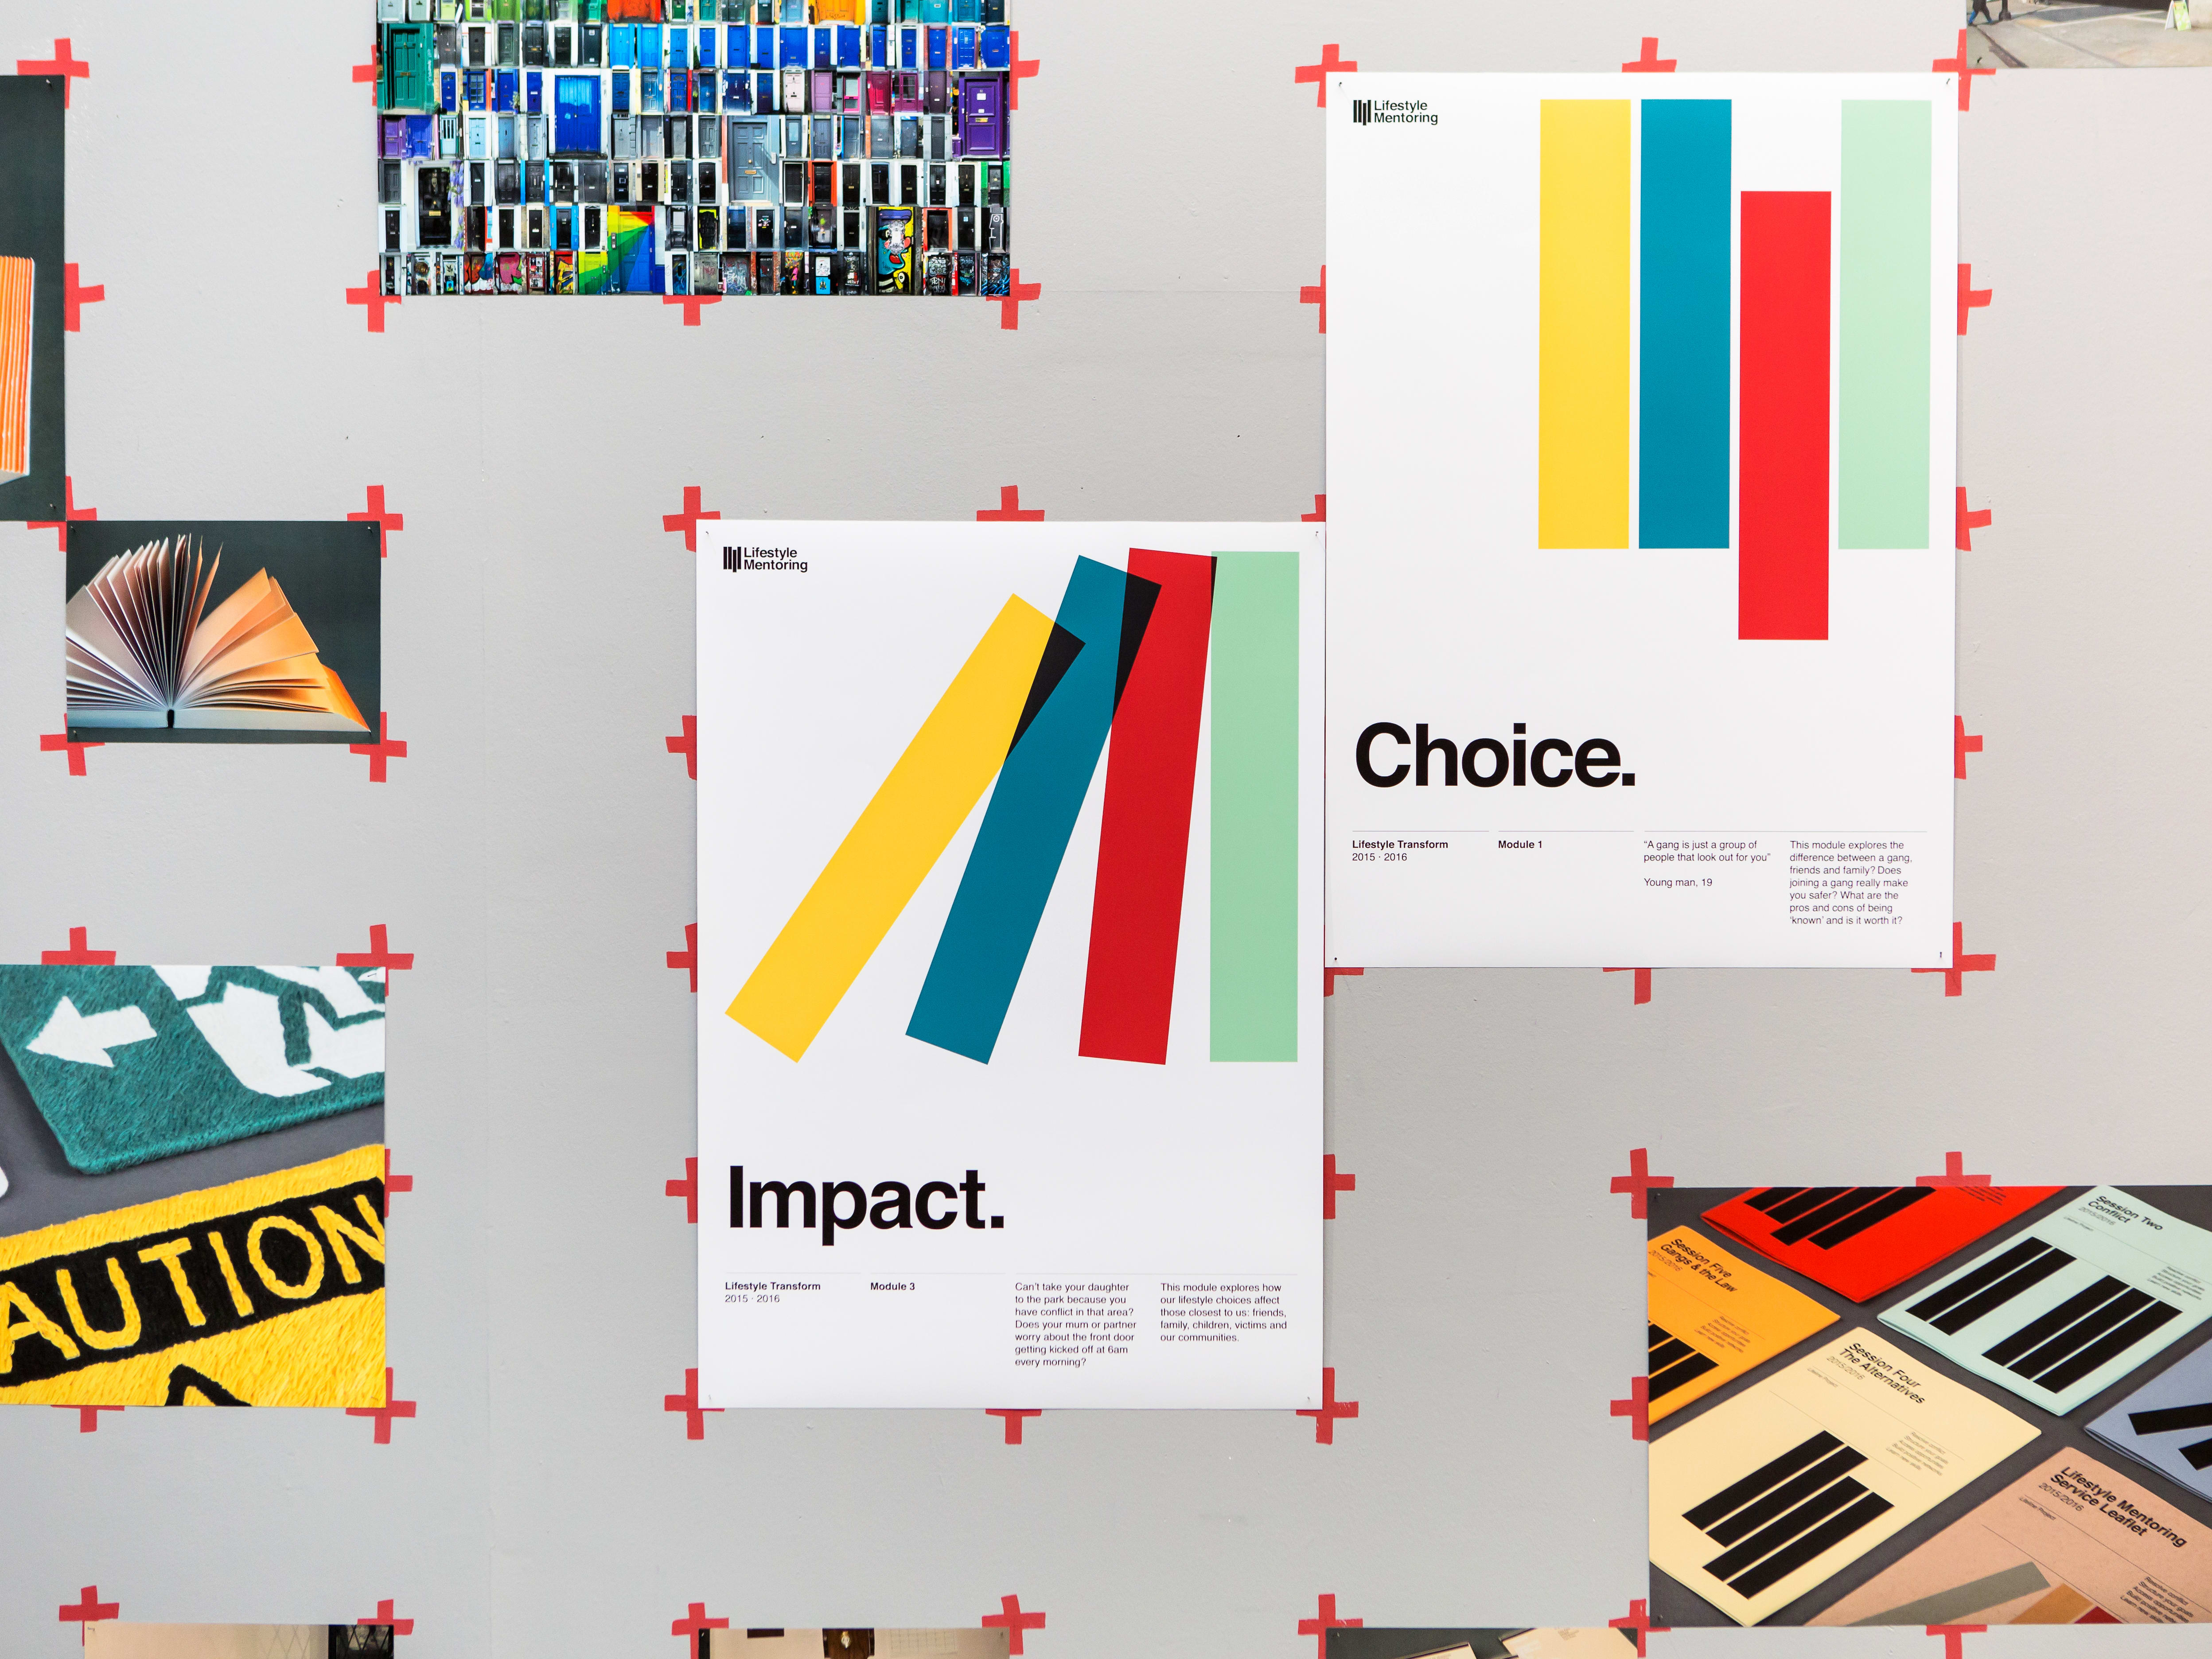 Colourful posters on a wall reading